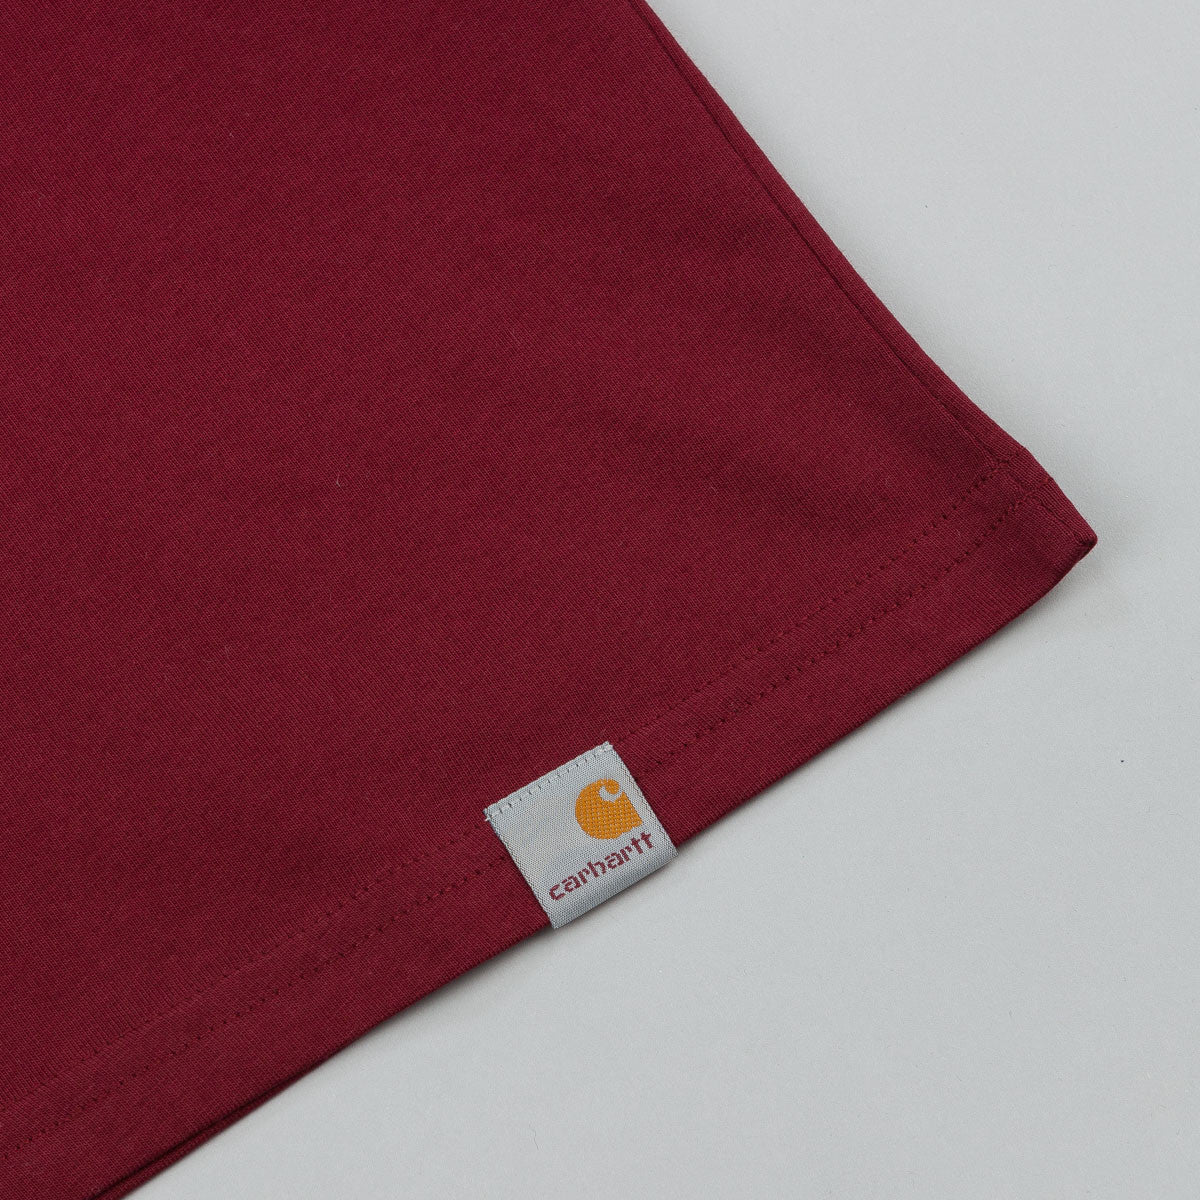 Carhartt Brushed T-Shirt - Cranberry / White